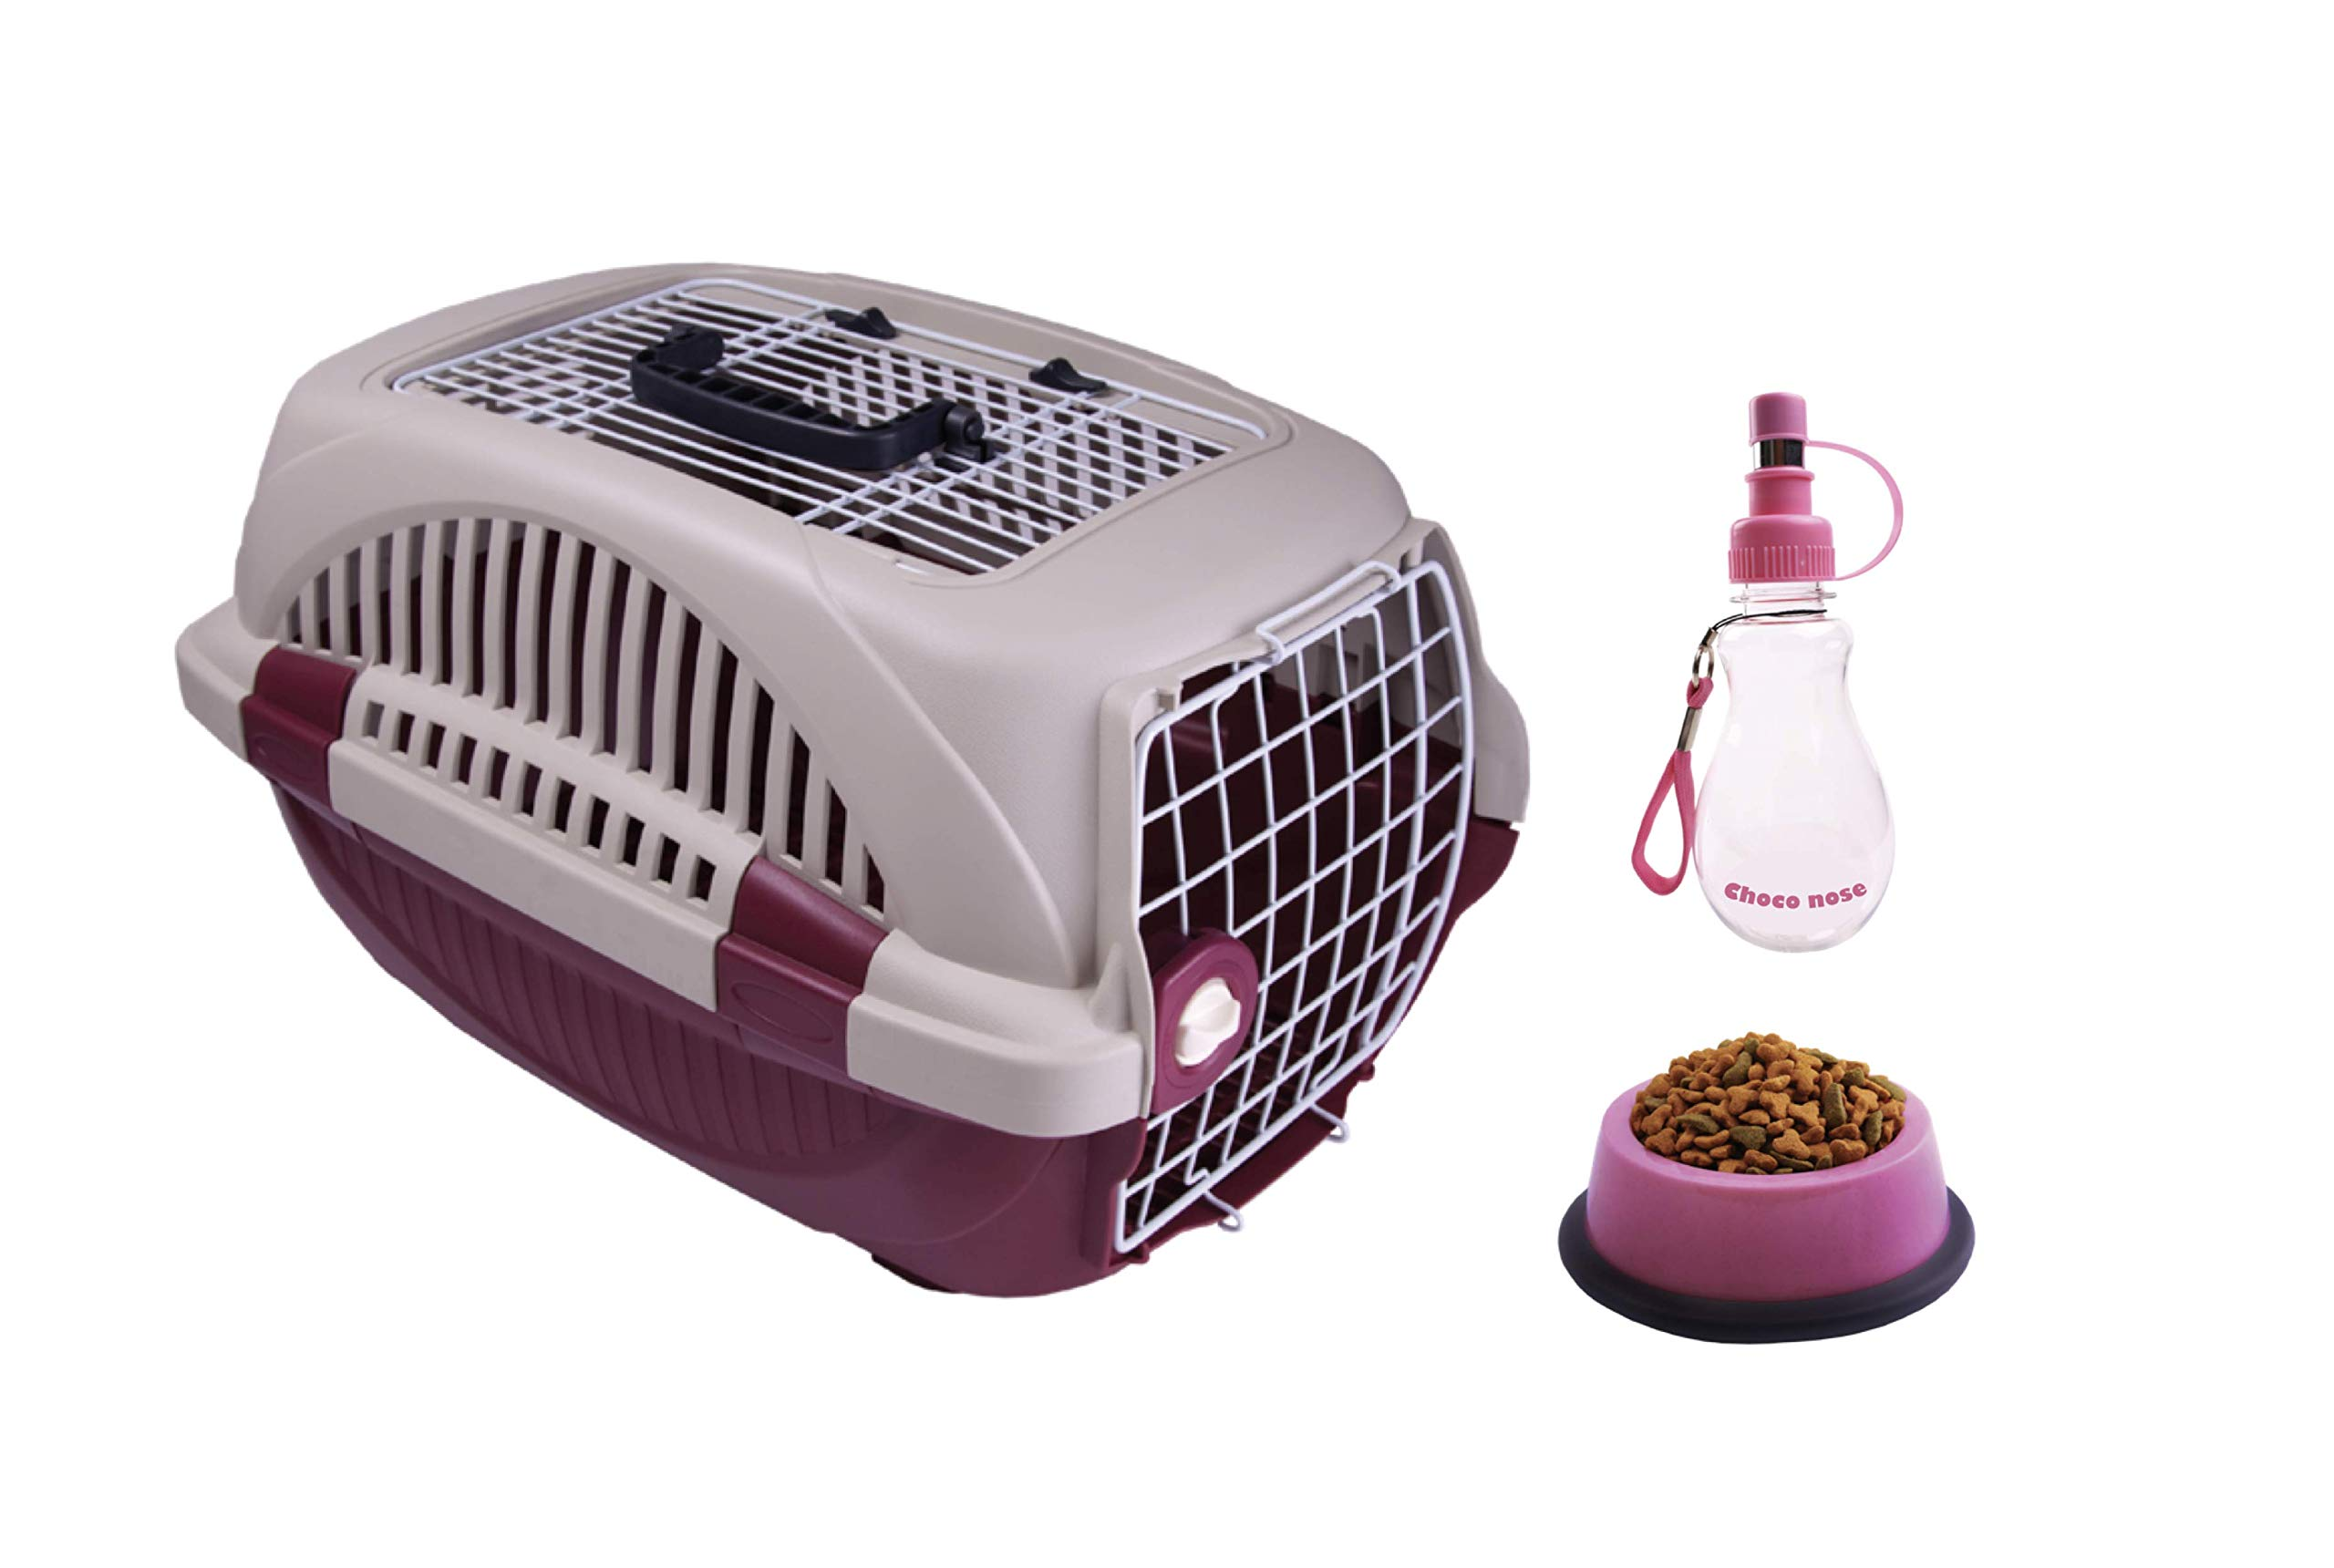 Choco Nose Pet Travel Set. Durable Top Load Pet Travel Kennel, Carrier, Crate for Pets Under 12 Lb, Small to Mini Sized Dog, Cat, Rabbit, Chinchilla. Portable Water Bottle & Pet Bowl (Burgundy) by Choco Nose